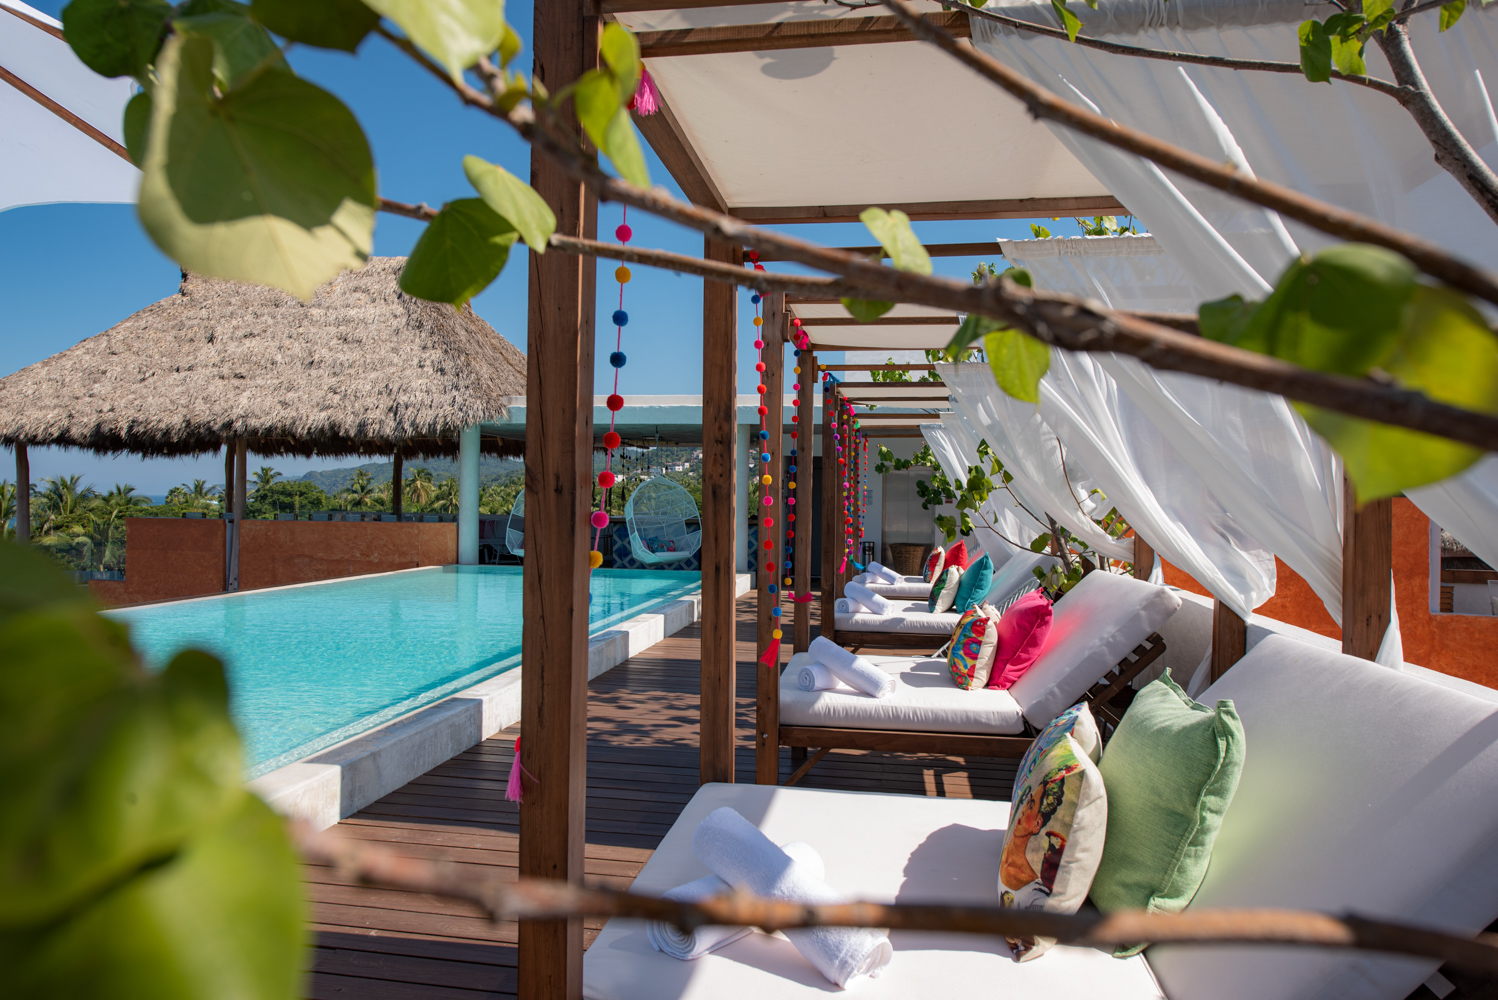 RELAX UNDER THE SUN WITH OUR CABANNAS